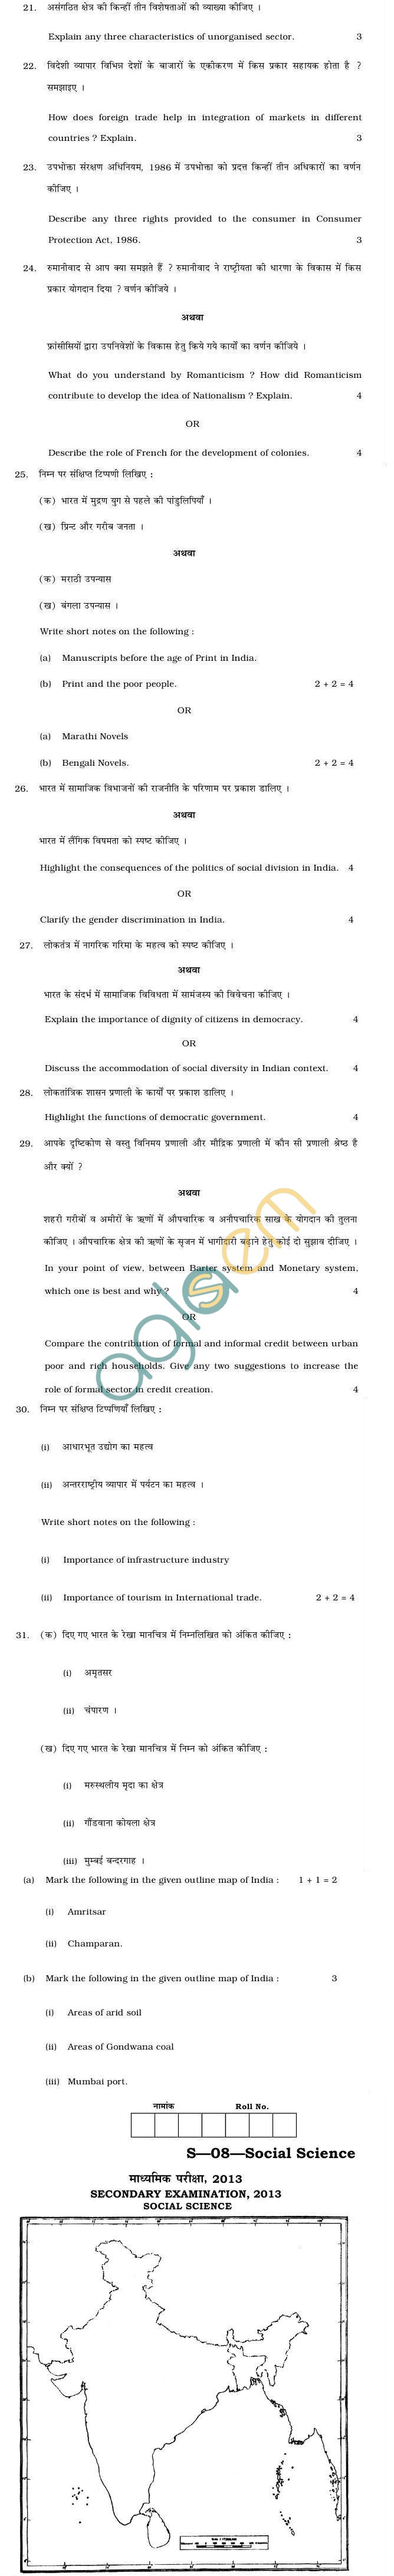 Rajasthan Board Secondary Social Science Question Paper 2013